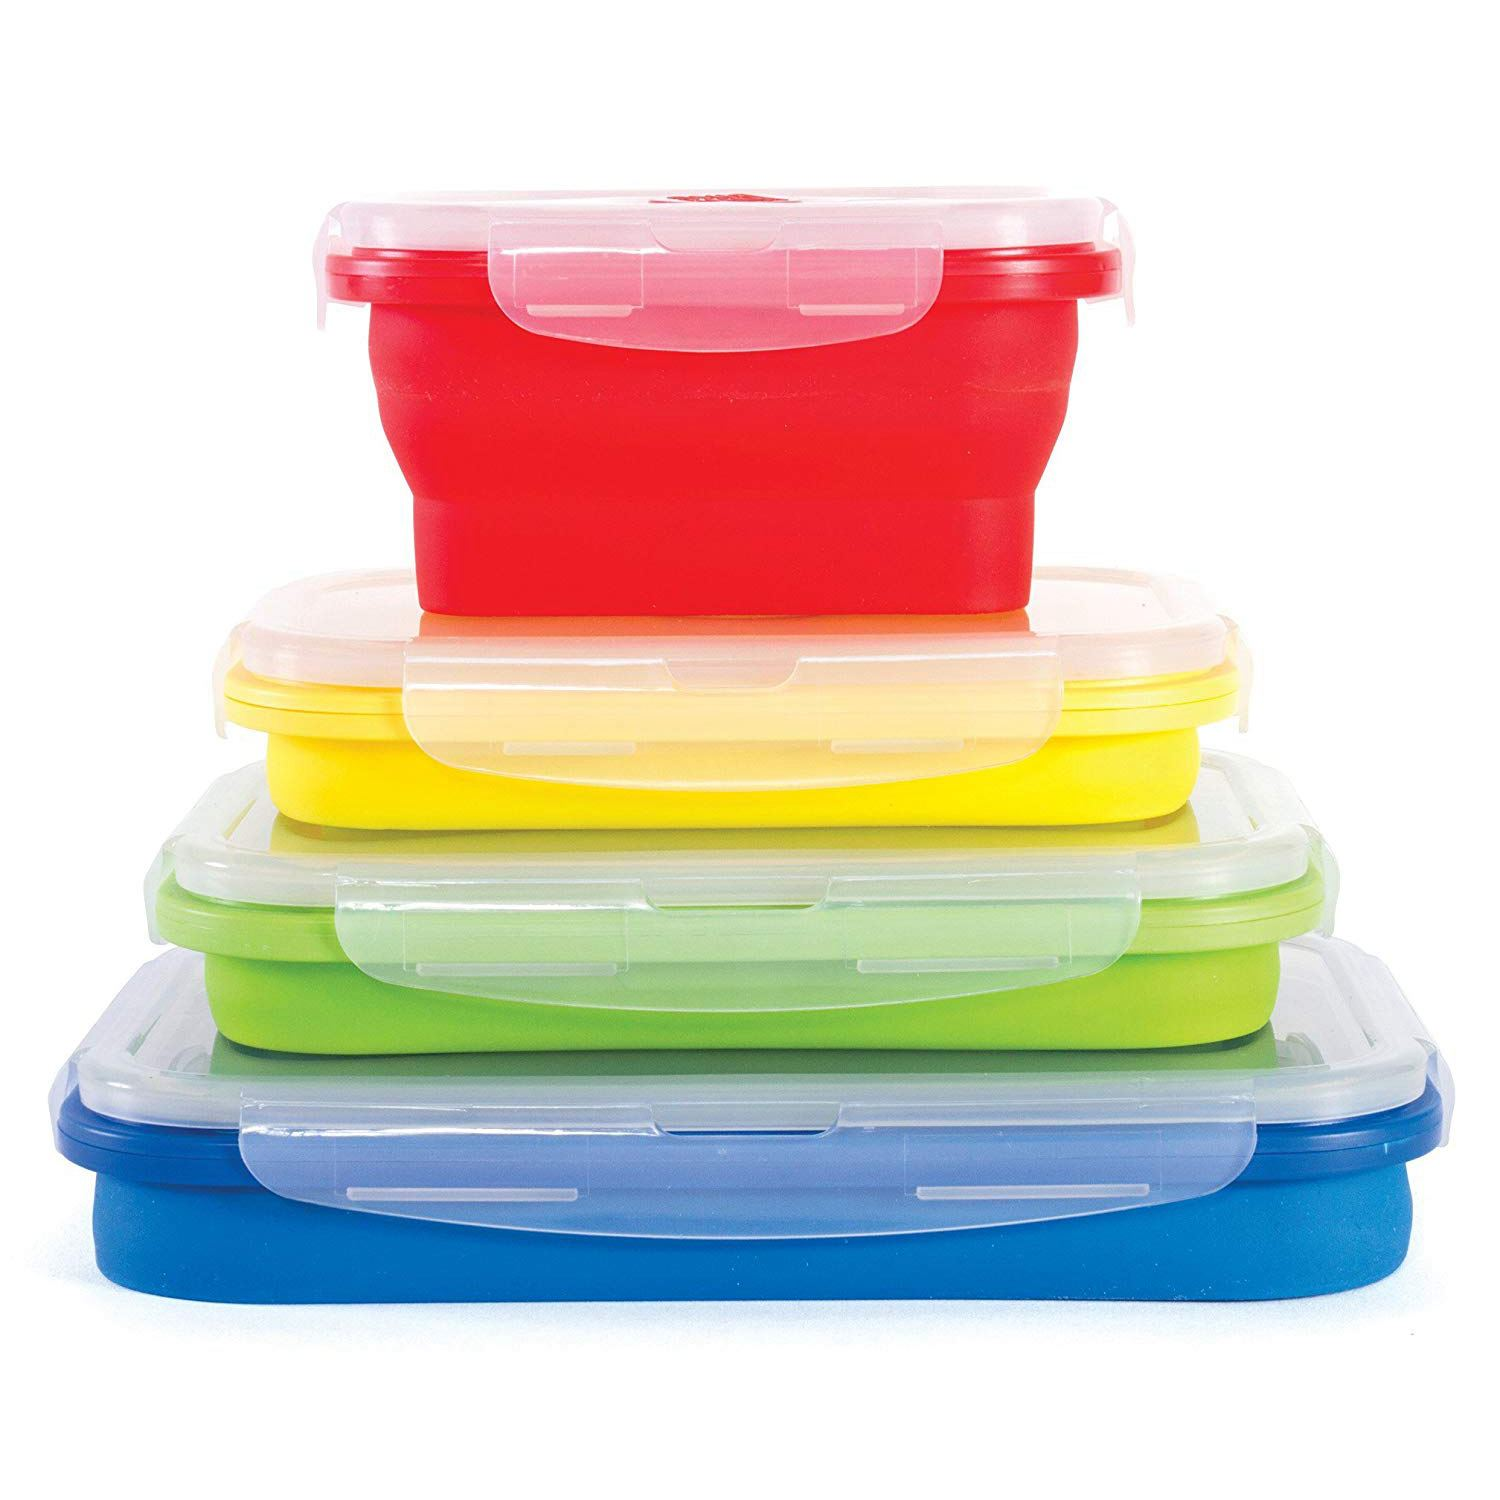 Thin Bins Collapsible Containers-Set of 4 Silicone Food Storage Containers - BPA Free, Microwave, Dishwasher and Freezer Safe Thin Bins Collapsible Containers-Set of 4 Silicone Food Storage Containers - BPA Free, Microwave, Dishwasher and Freezer Safe